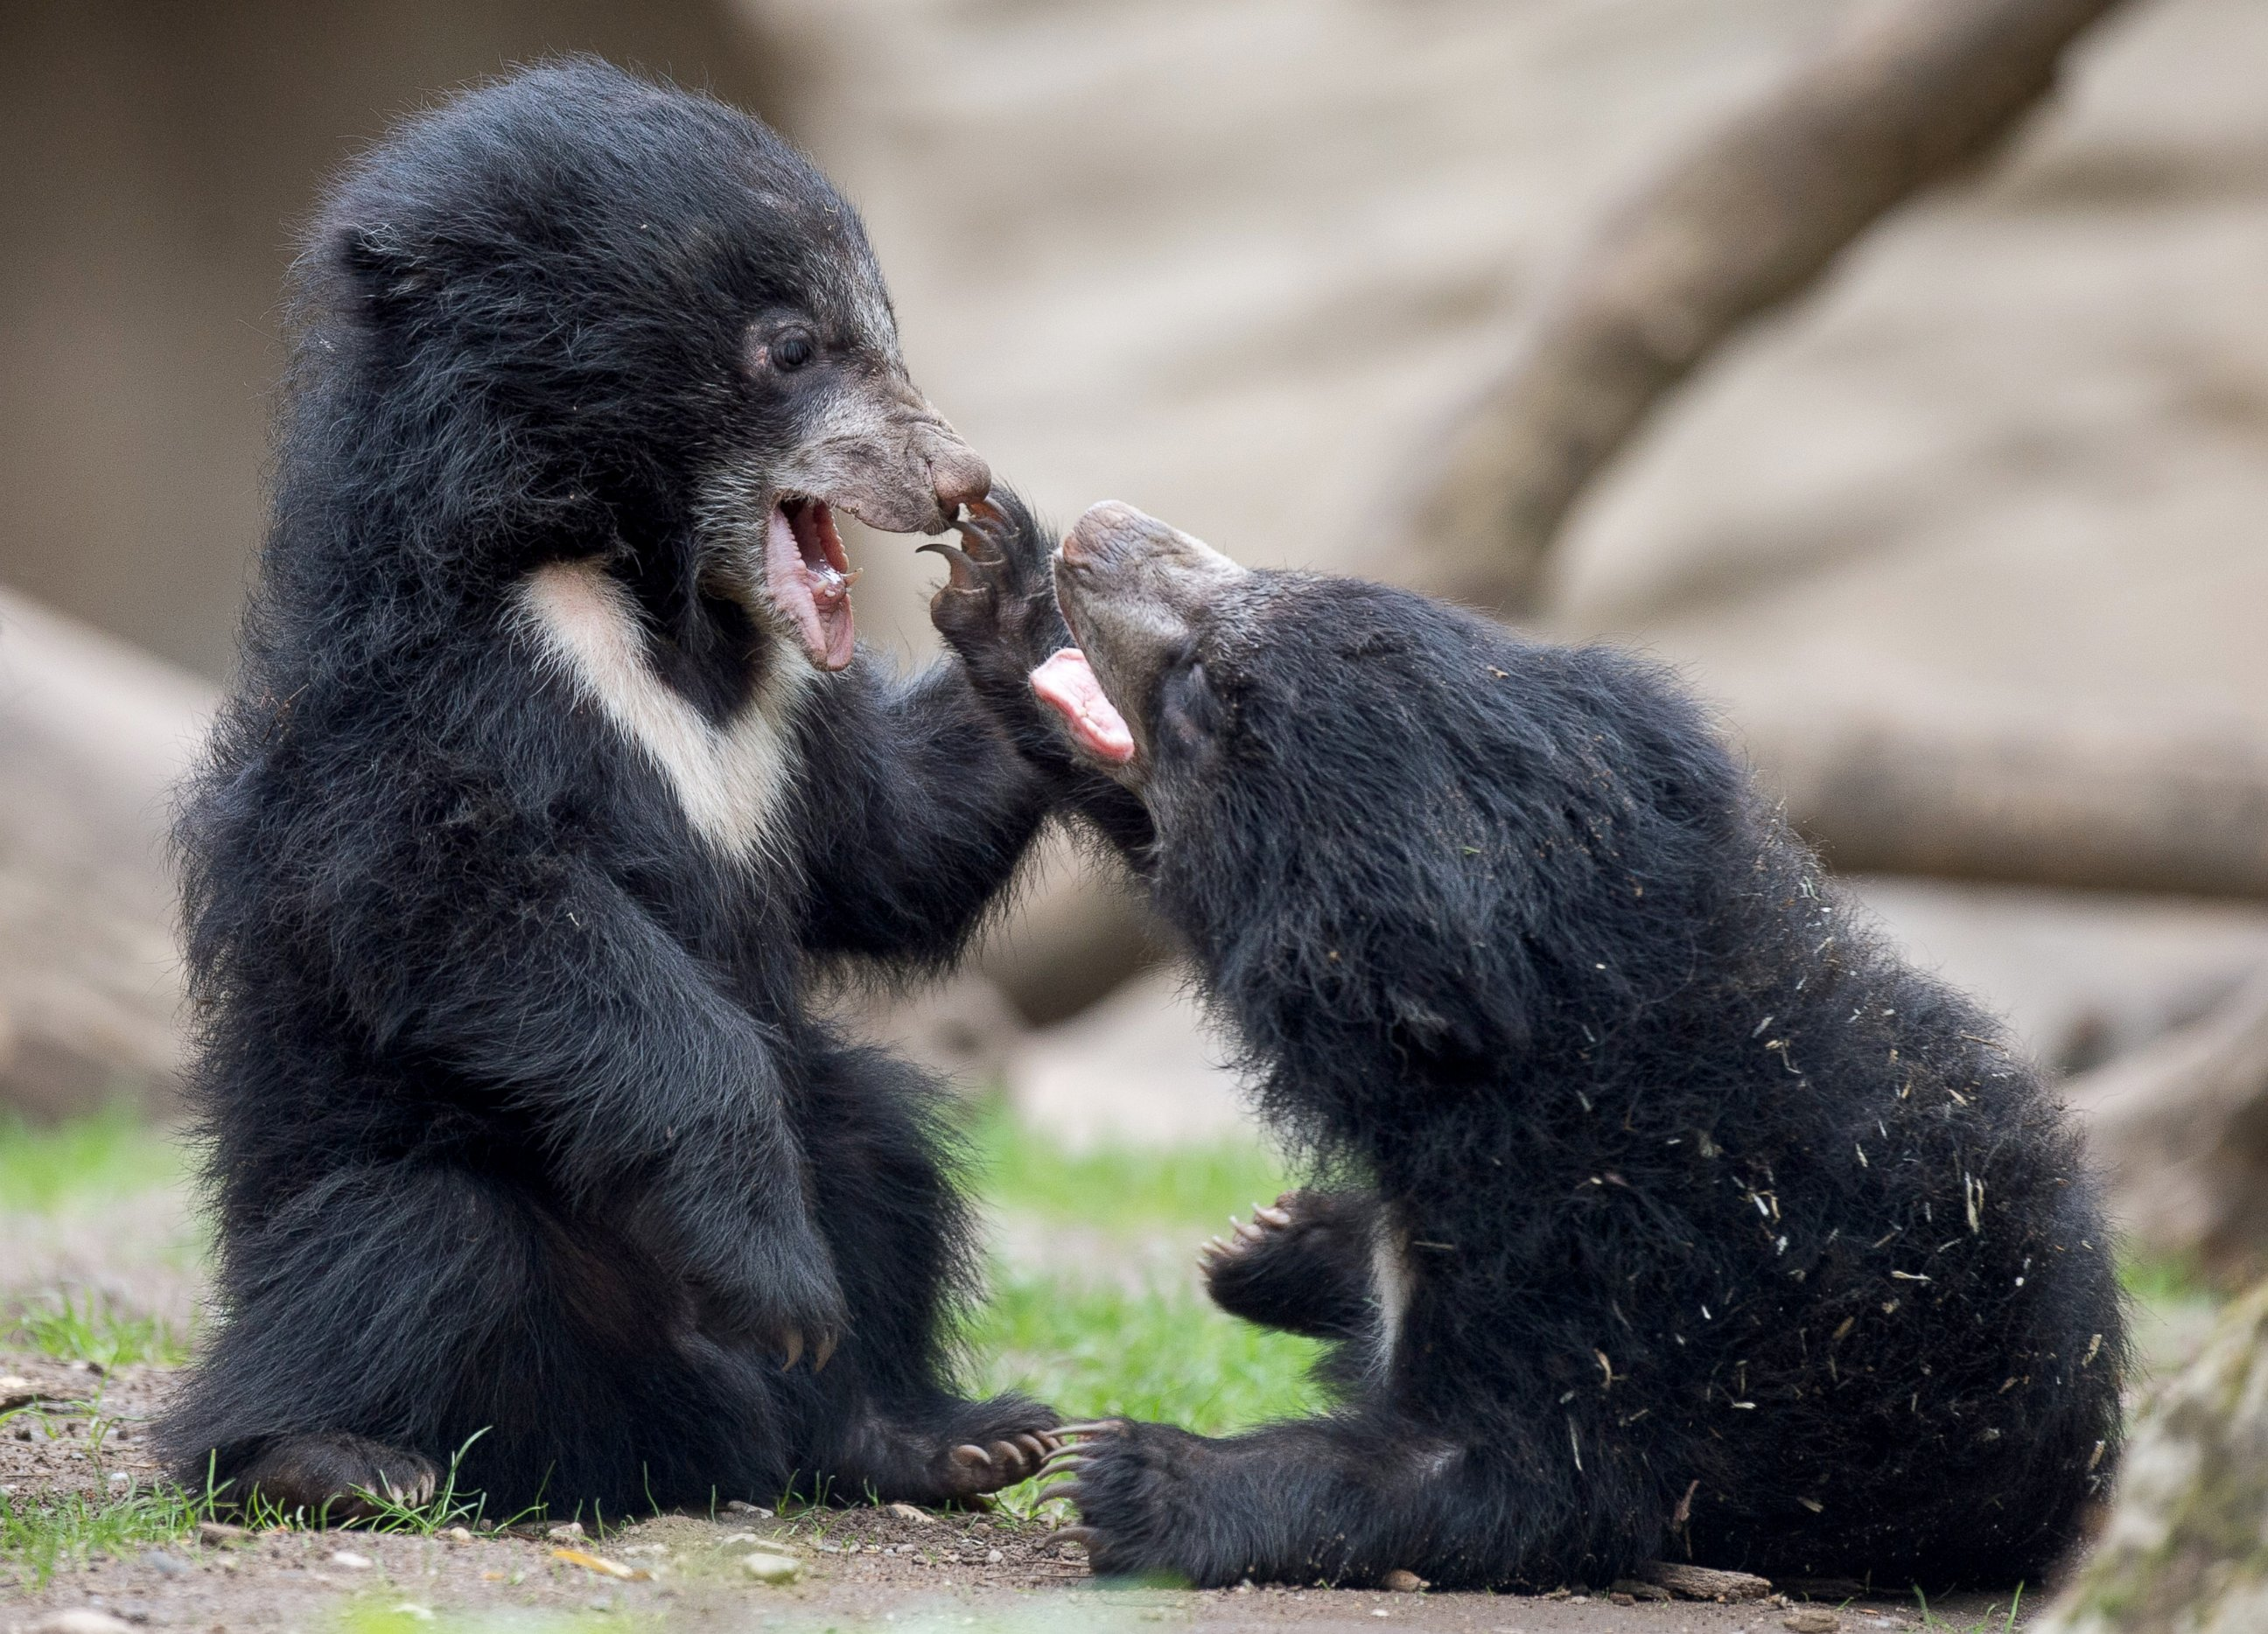 Two Sloth Bear Cubs Share a Laugh